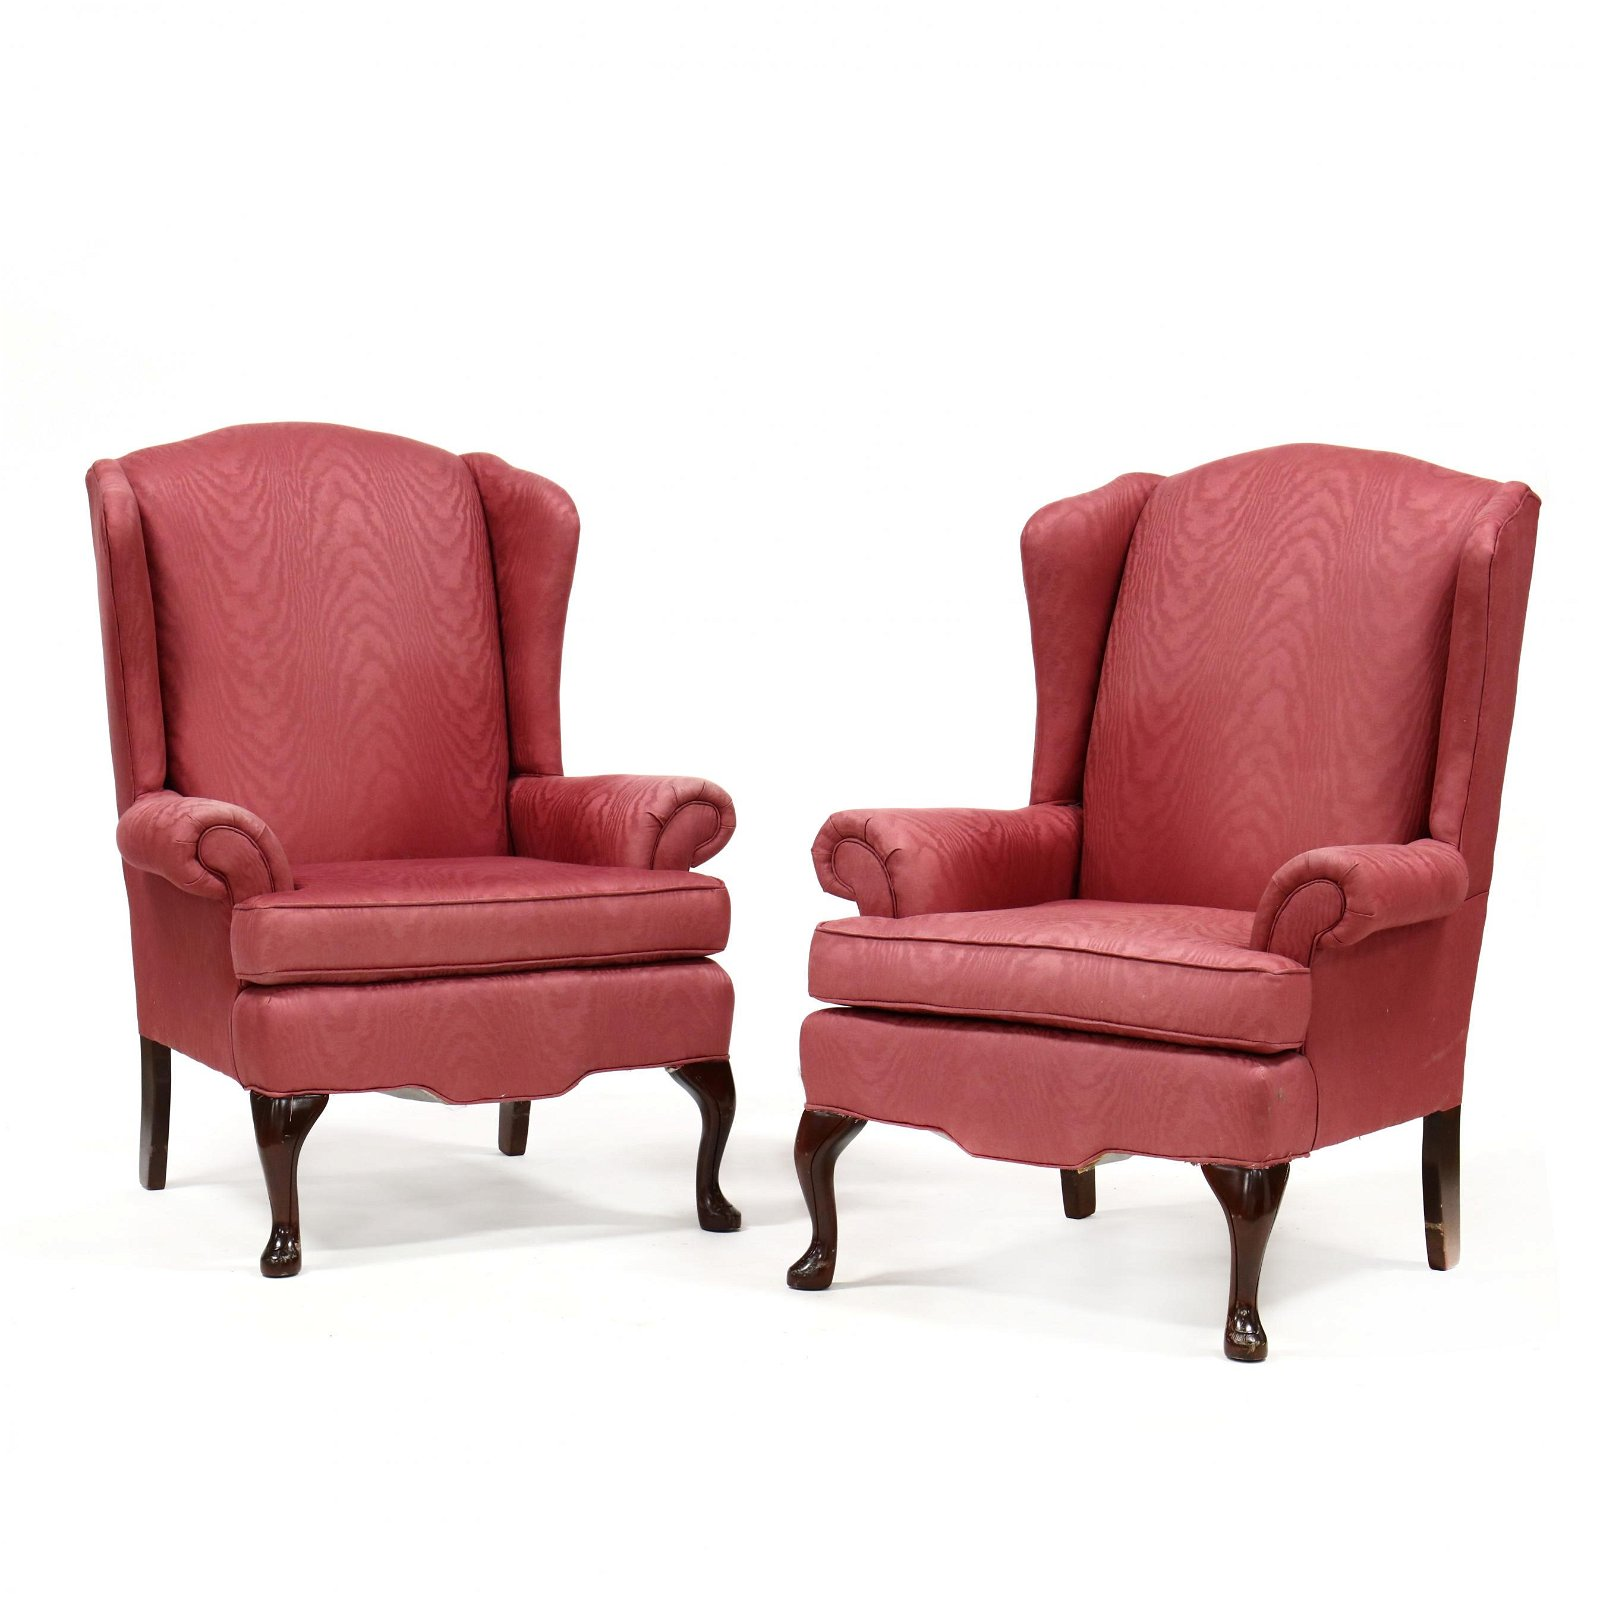 Pair of Queen Anne Style Easy Chairs